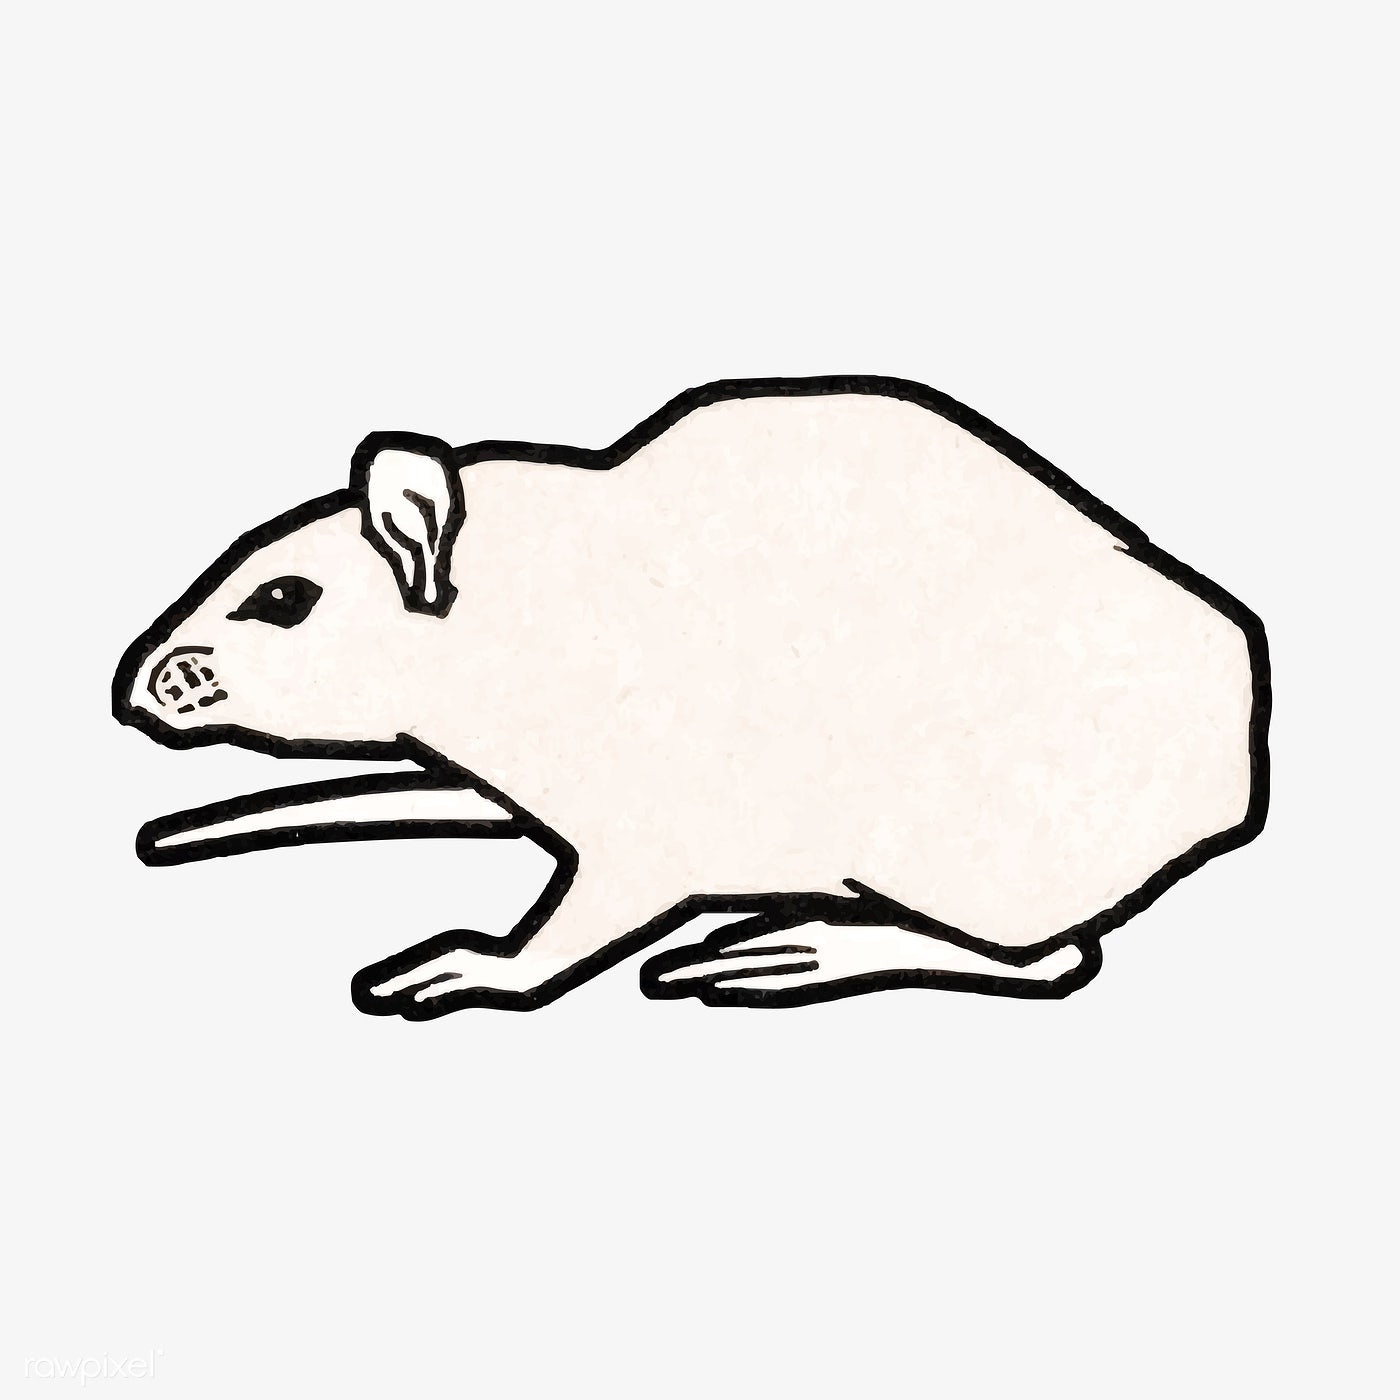 Mouse (1917) by Julie de Graag (1877-1924). Original from